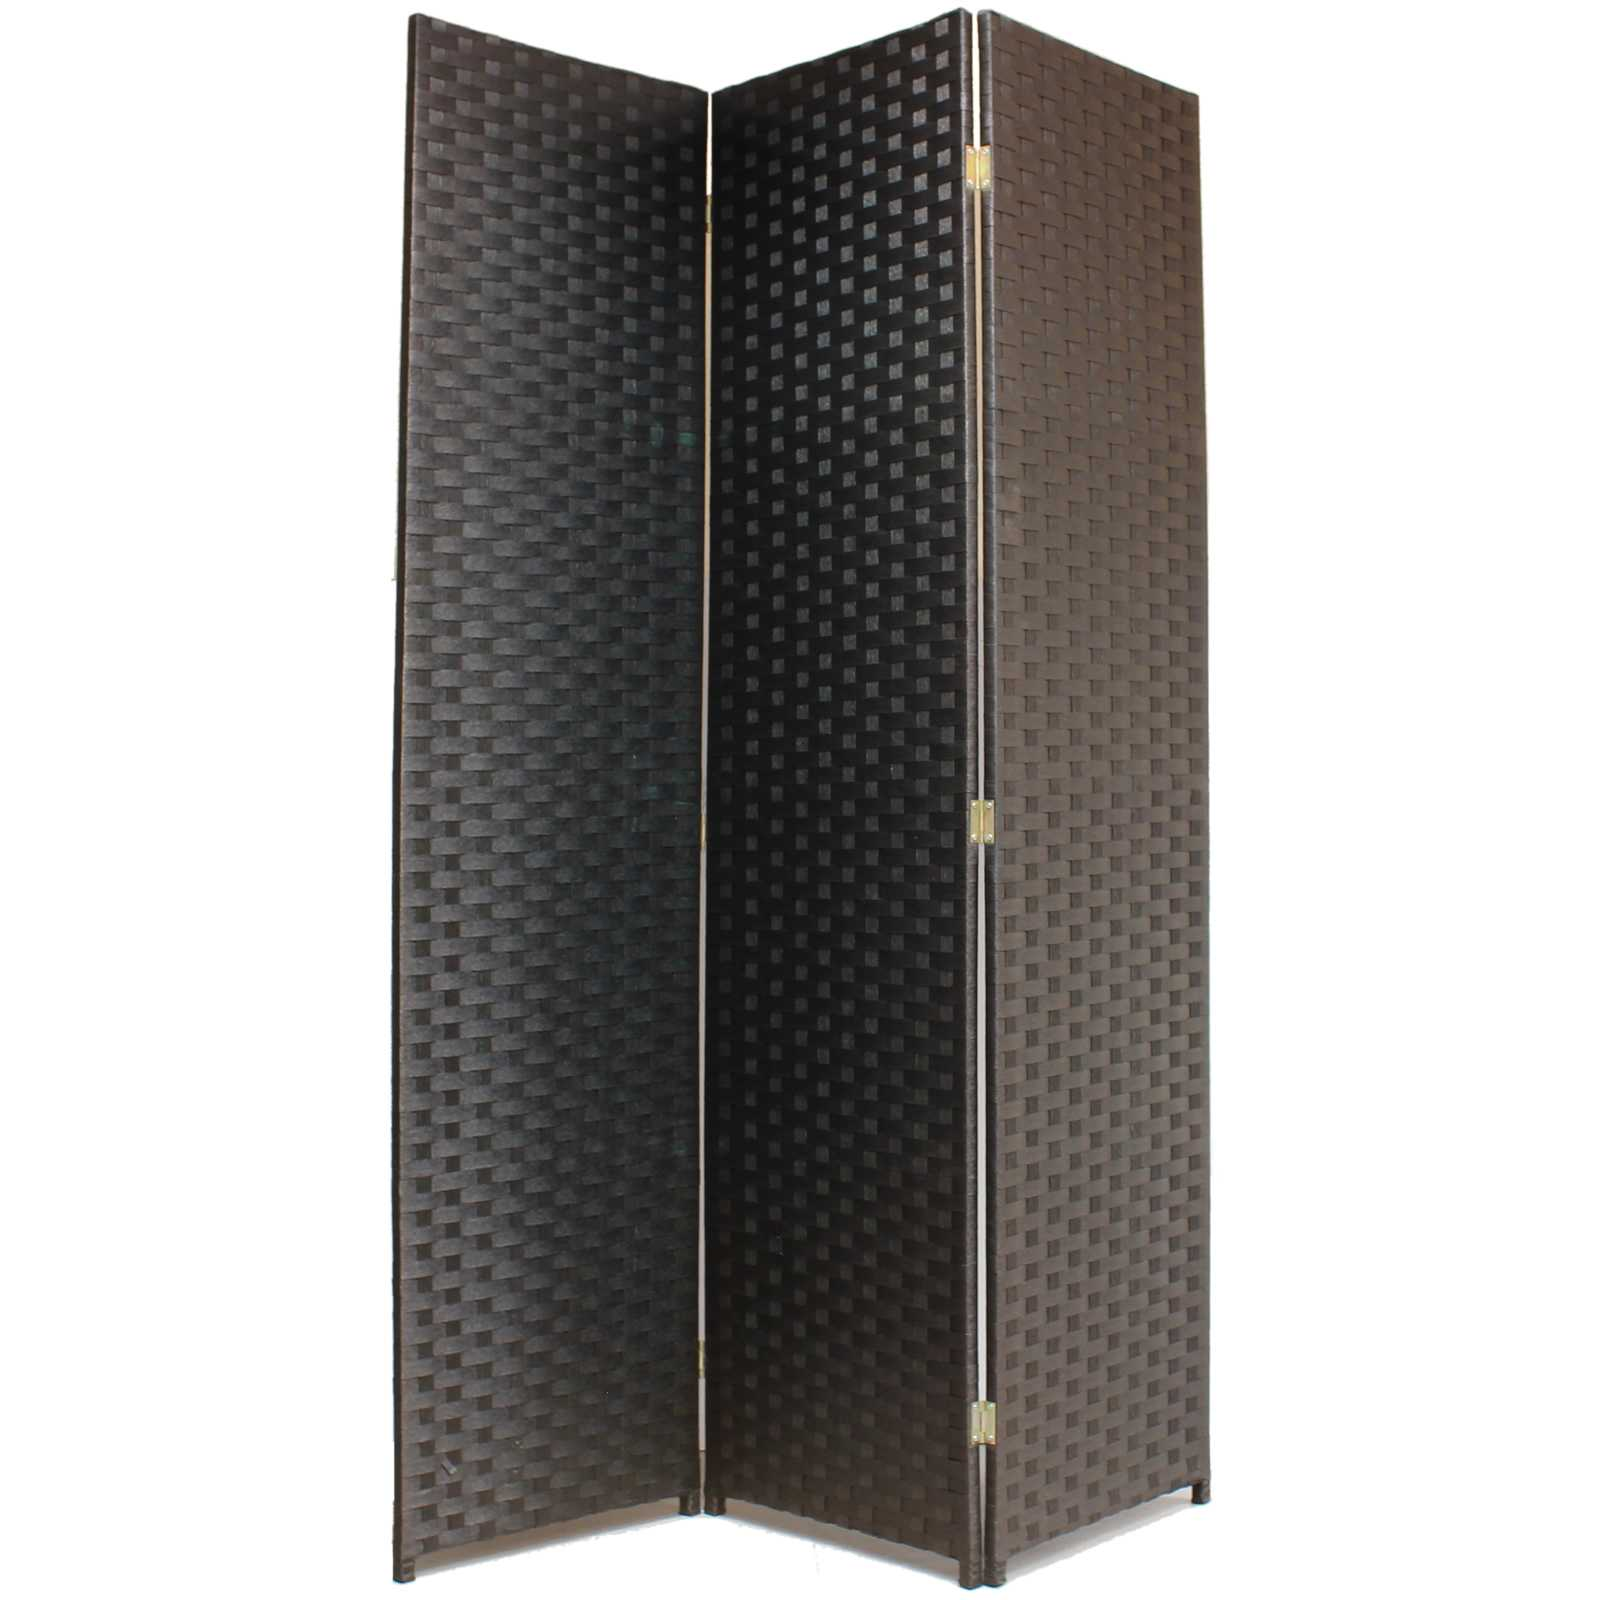 Partition Divider Hand Made Woven Wicker Room Dividerseparatorpanelprivacy Screen